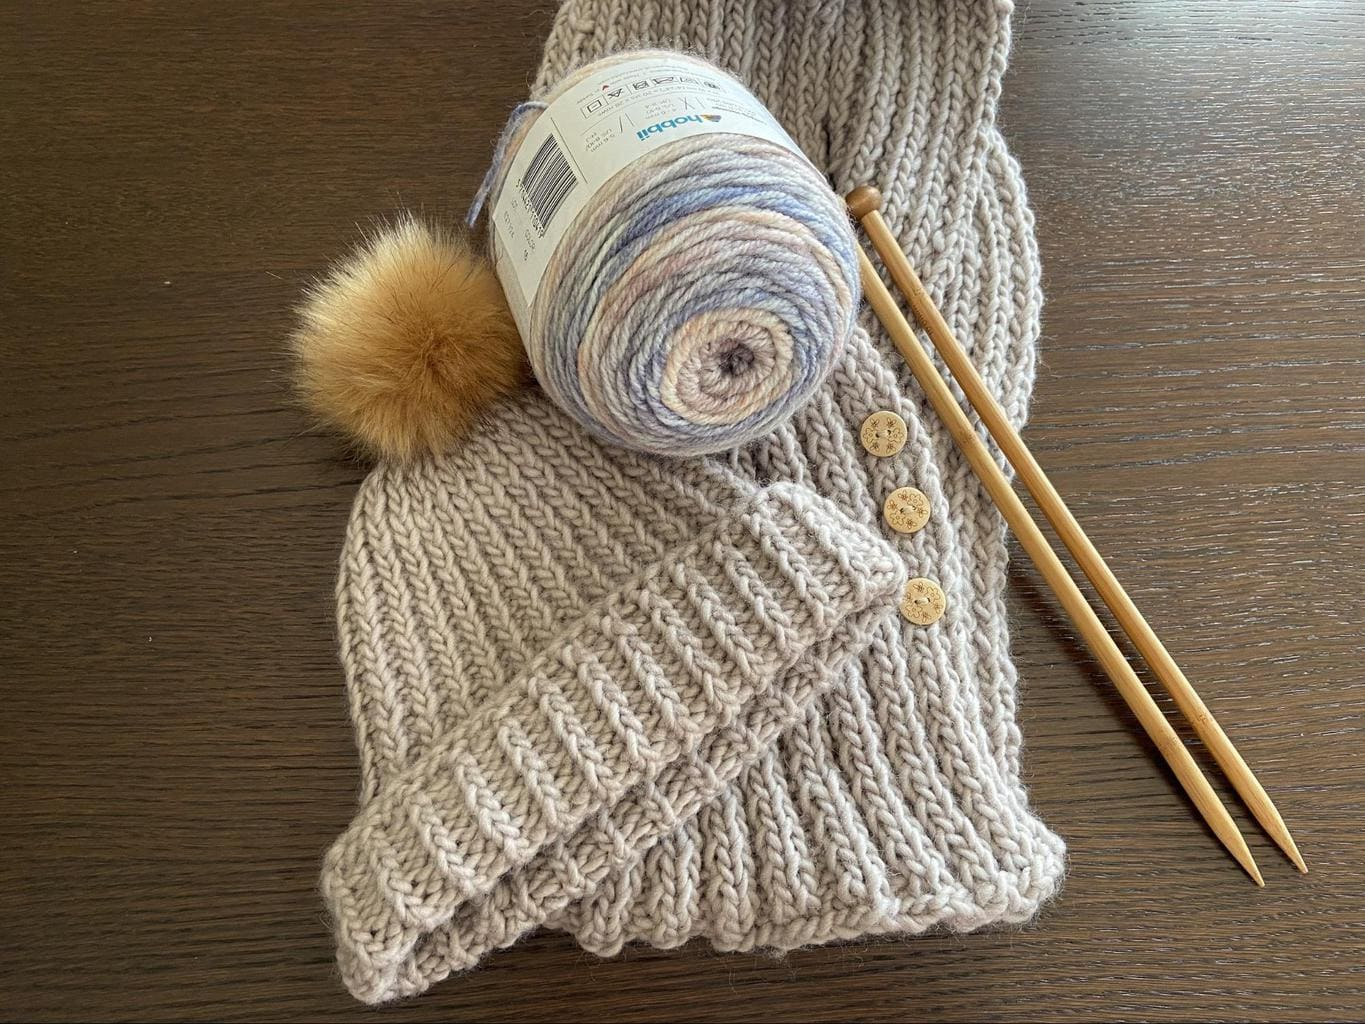 Danny's knitting efforts to avoid being bored at home